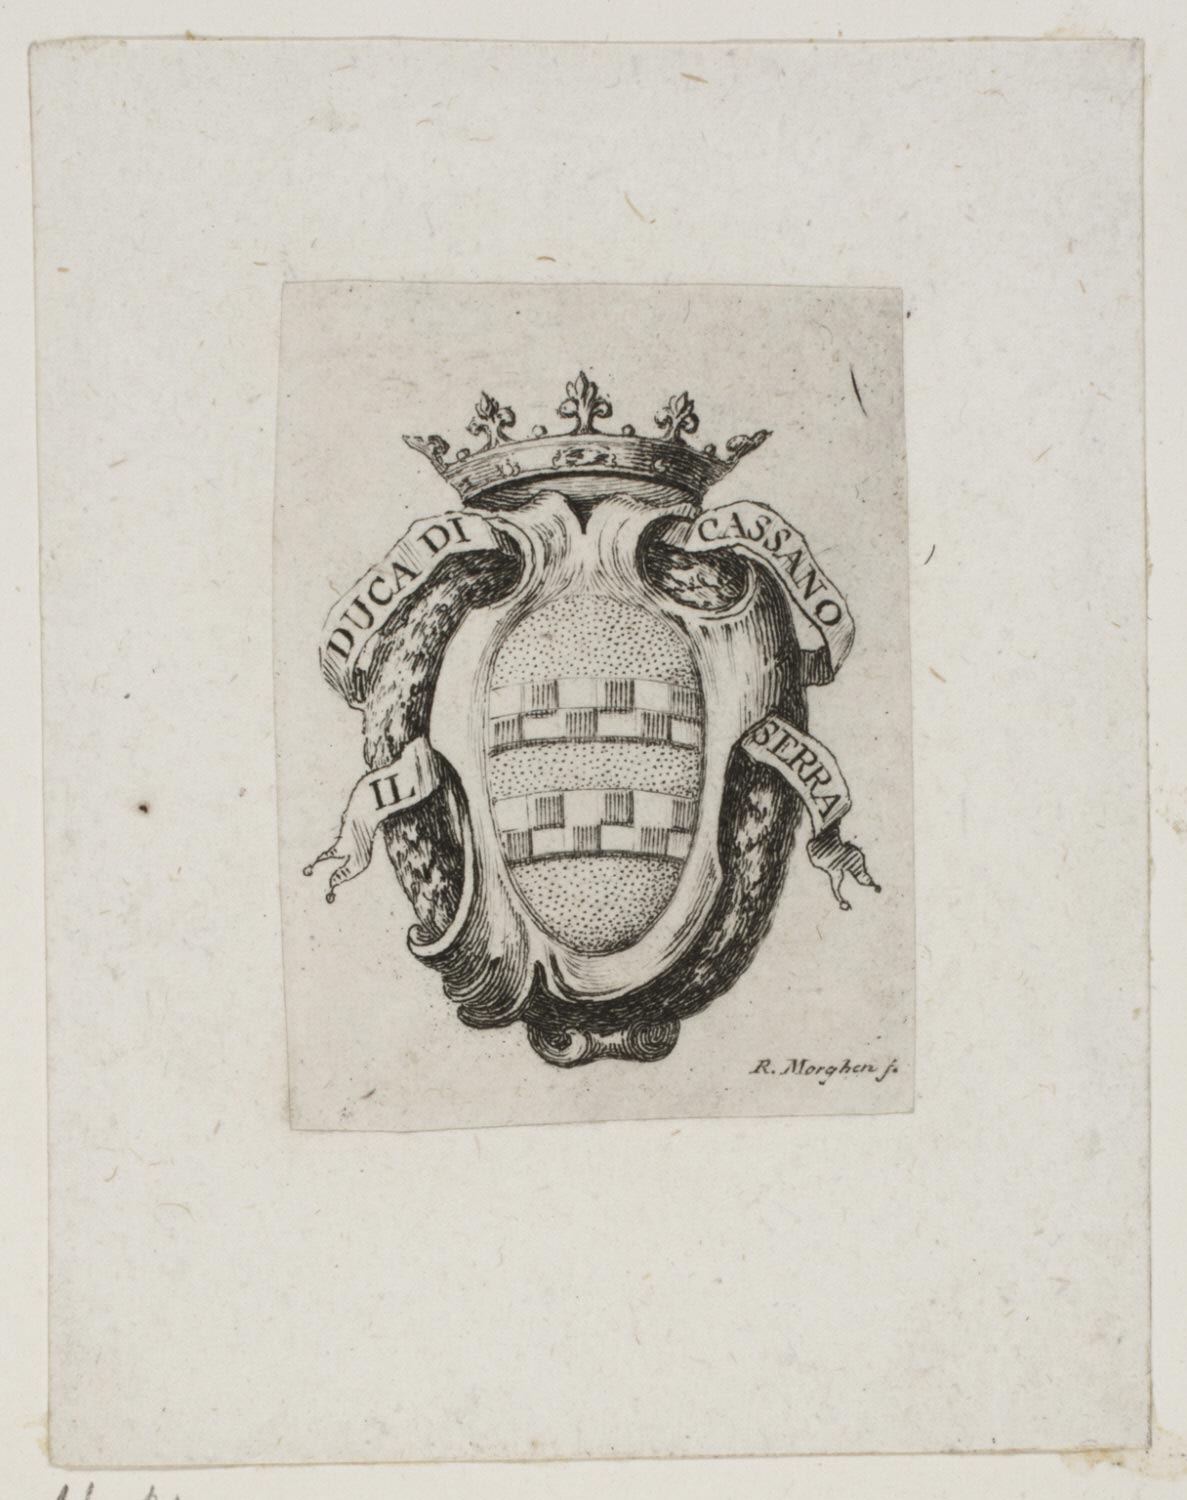 Book Plate with Coat of Arms of the Duke of Cassano Serra